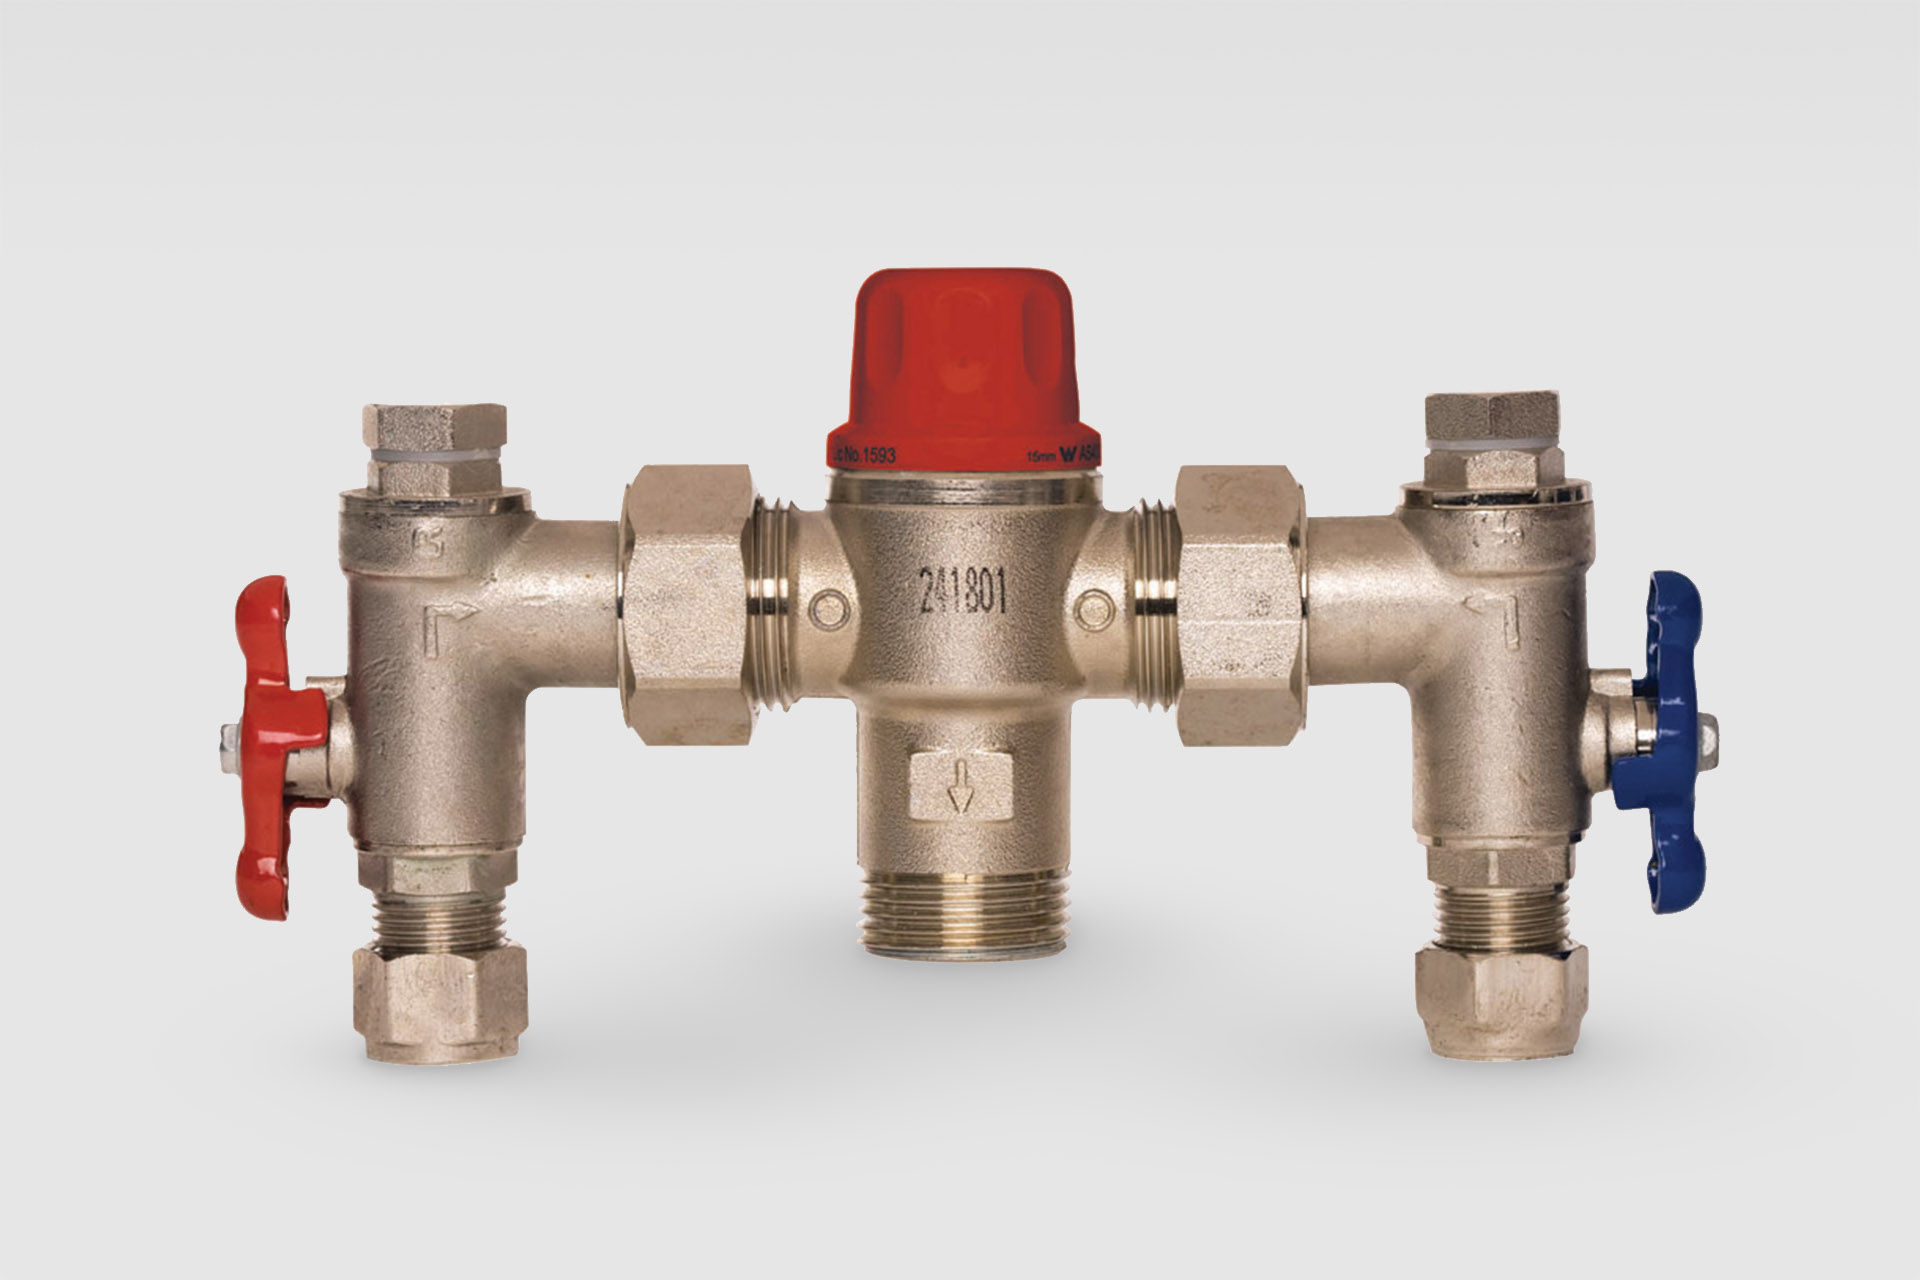 Thermostatic mixing valves testing service in Adelaide